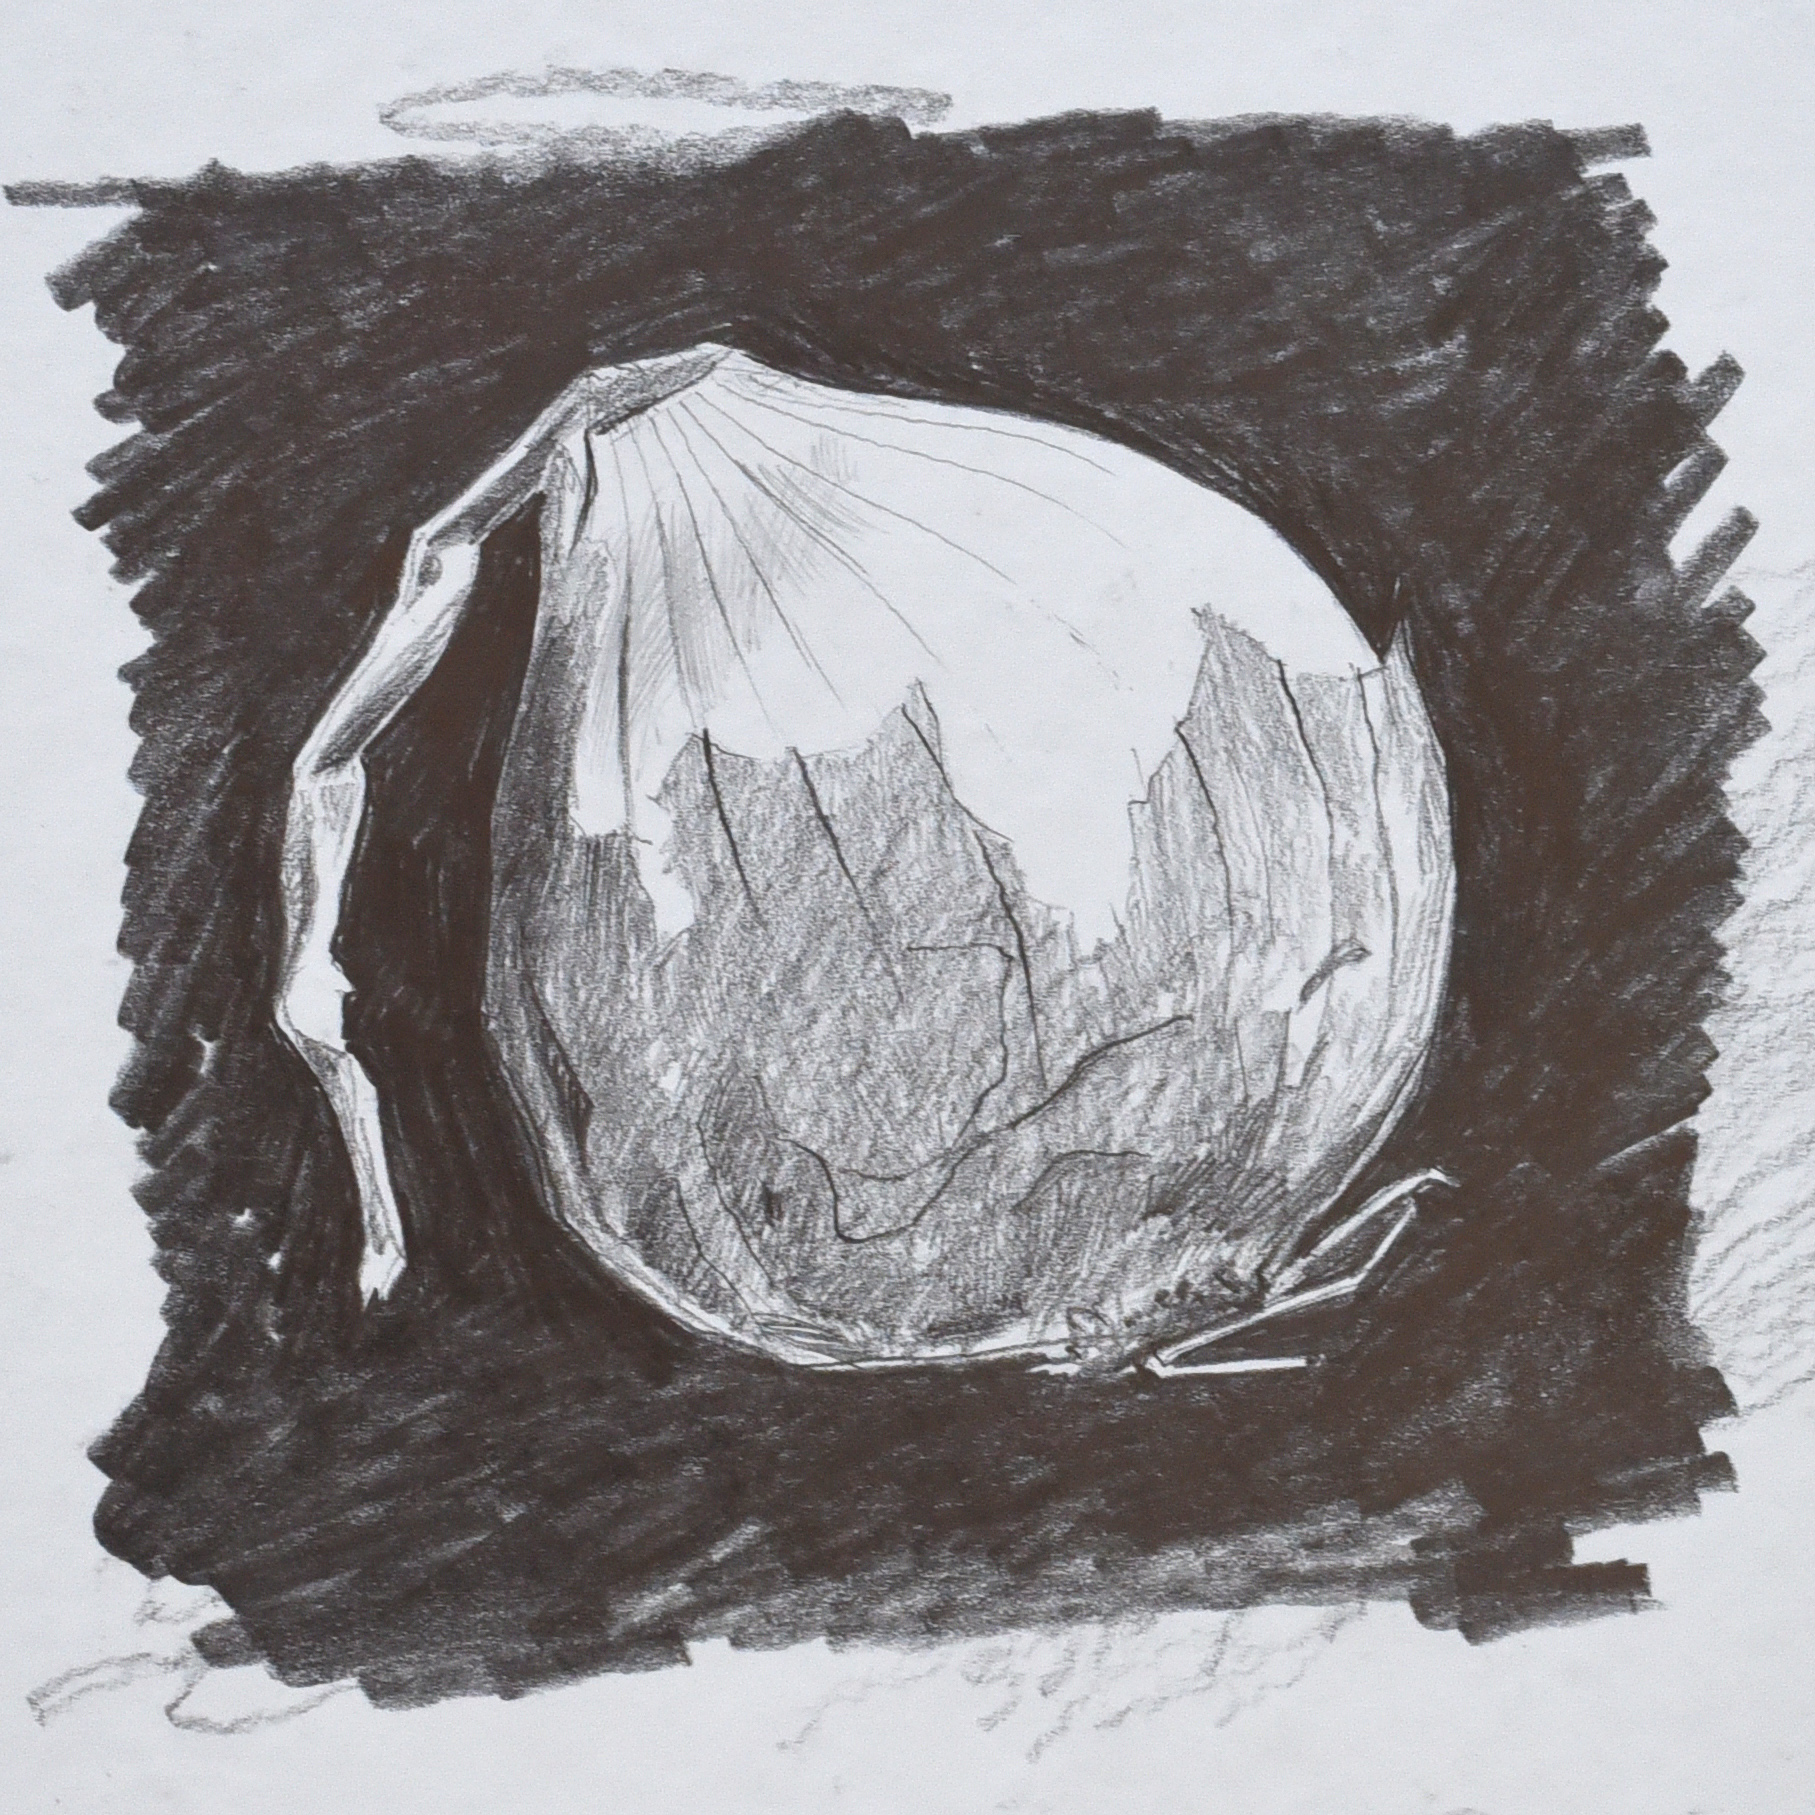 Charcoal drawing of an onion